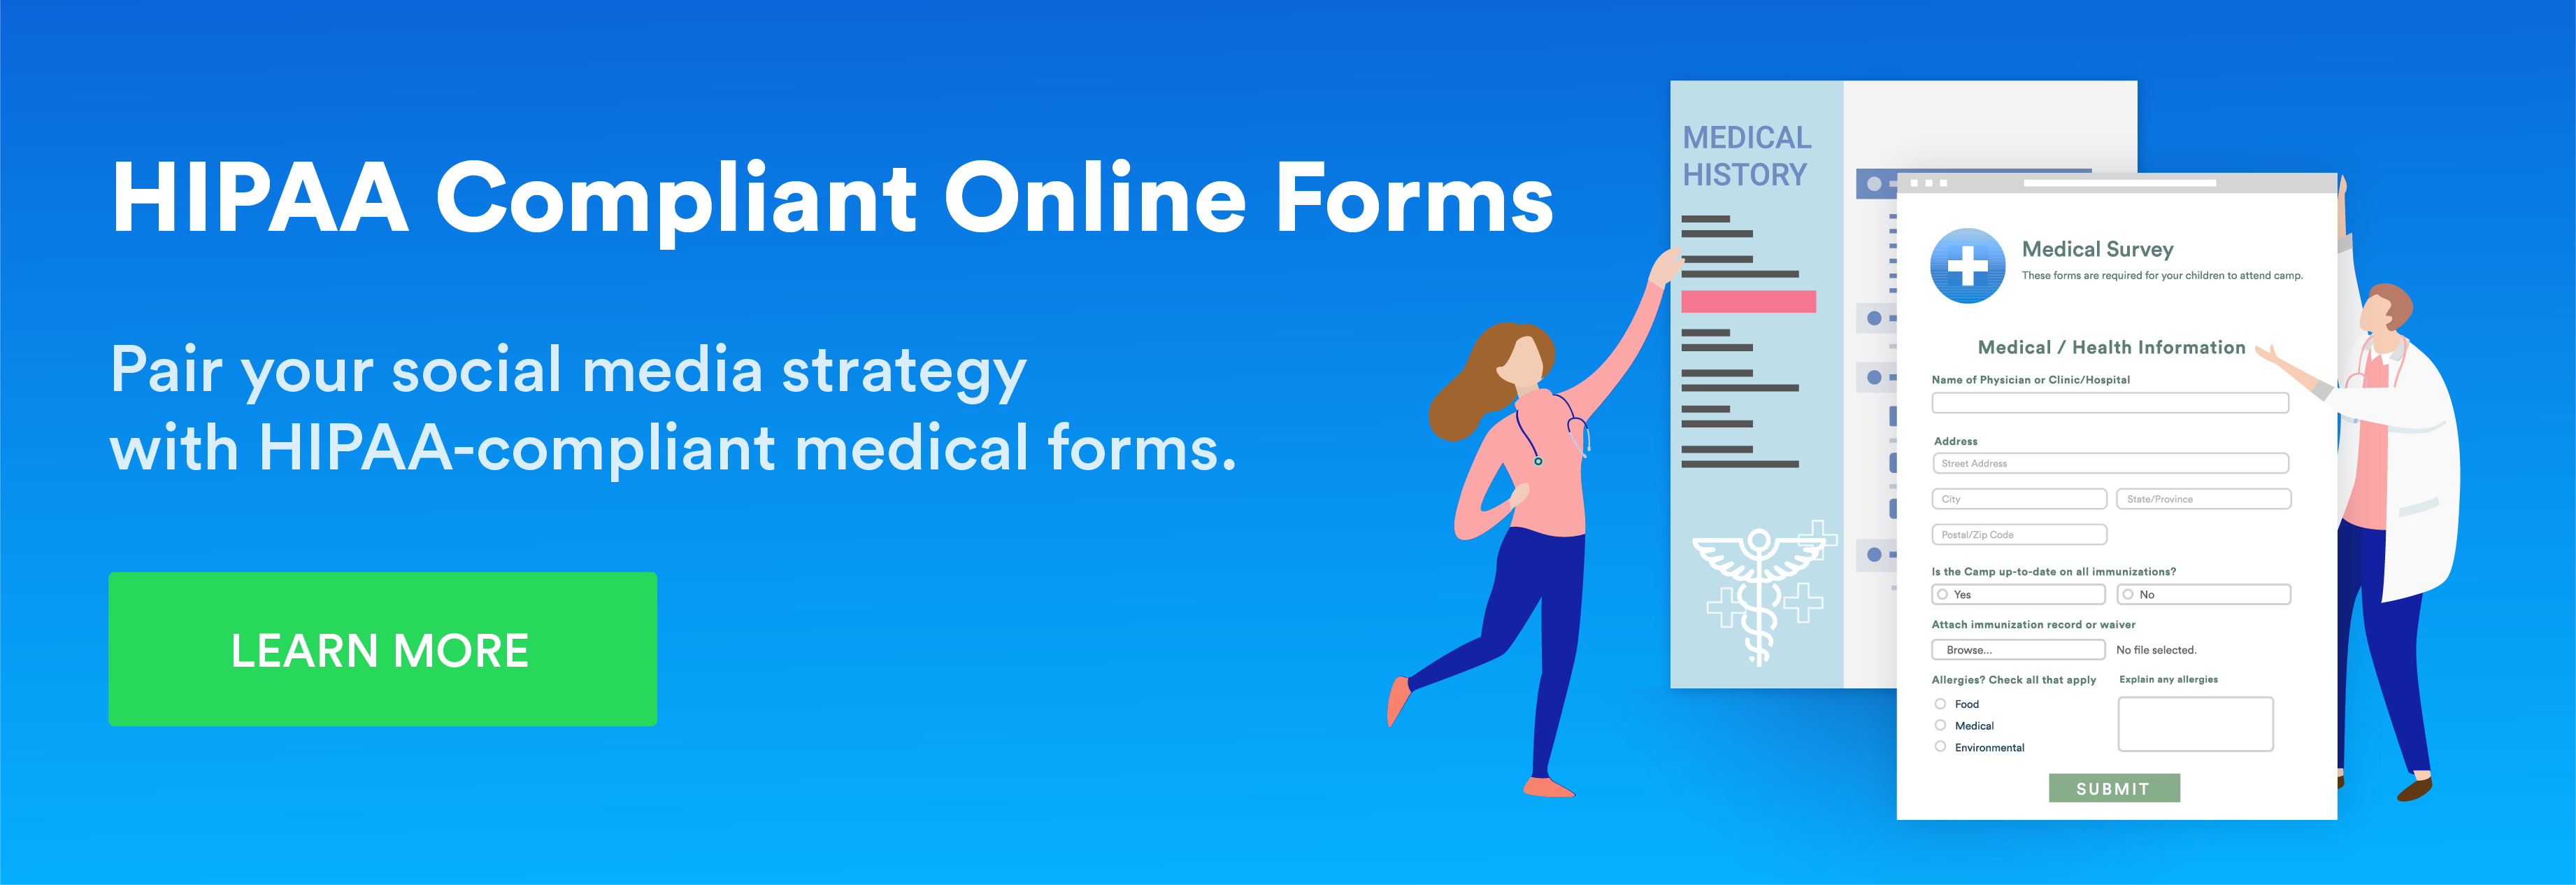 Pair your social media strategy with HIPAA-compliant medical forms.